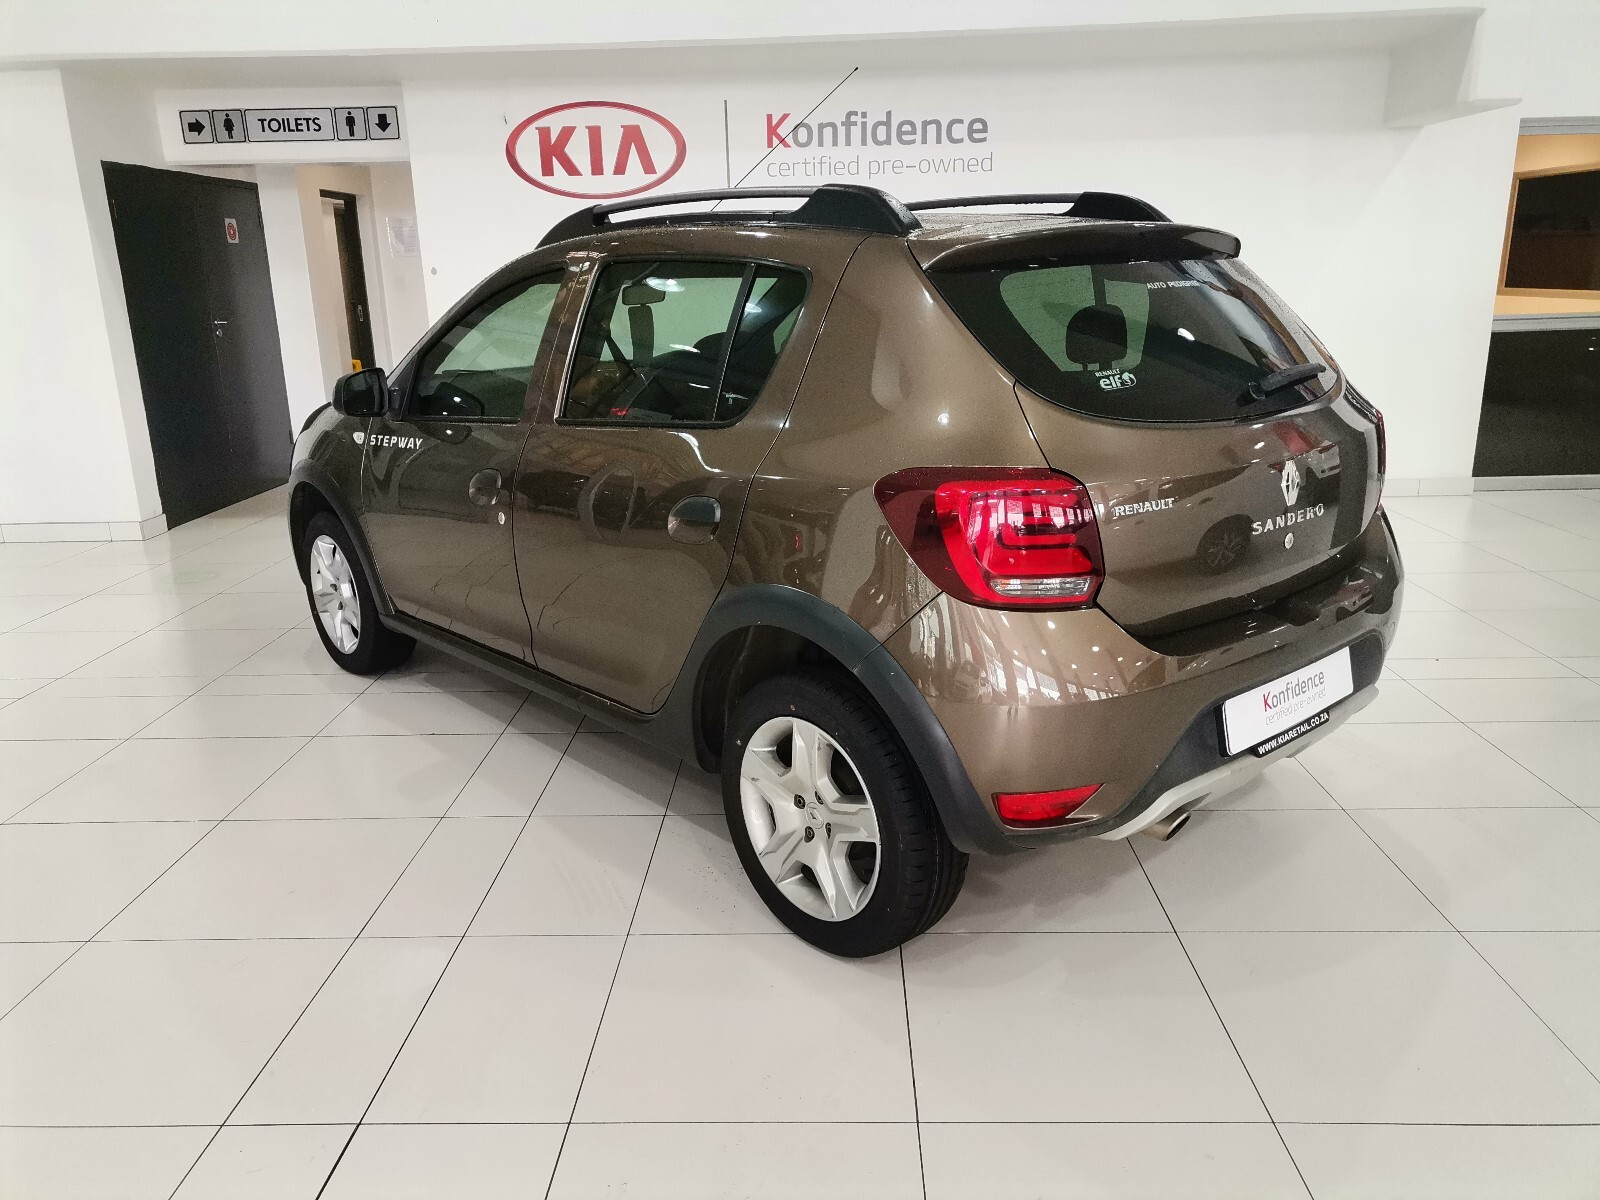 RENAULT 900T STEPWAY EXPRESSION Pinetown 7307425